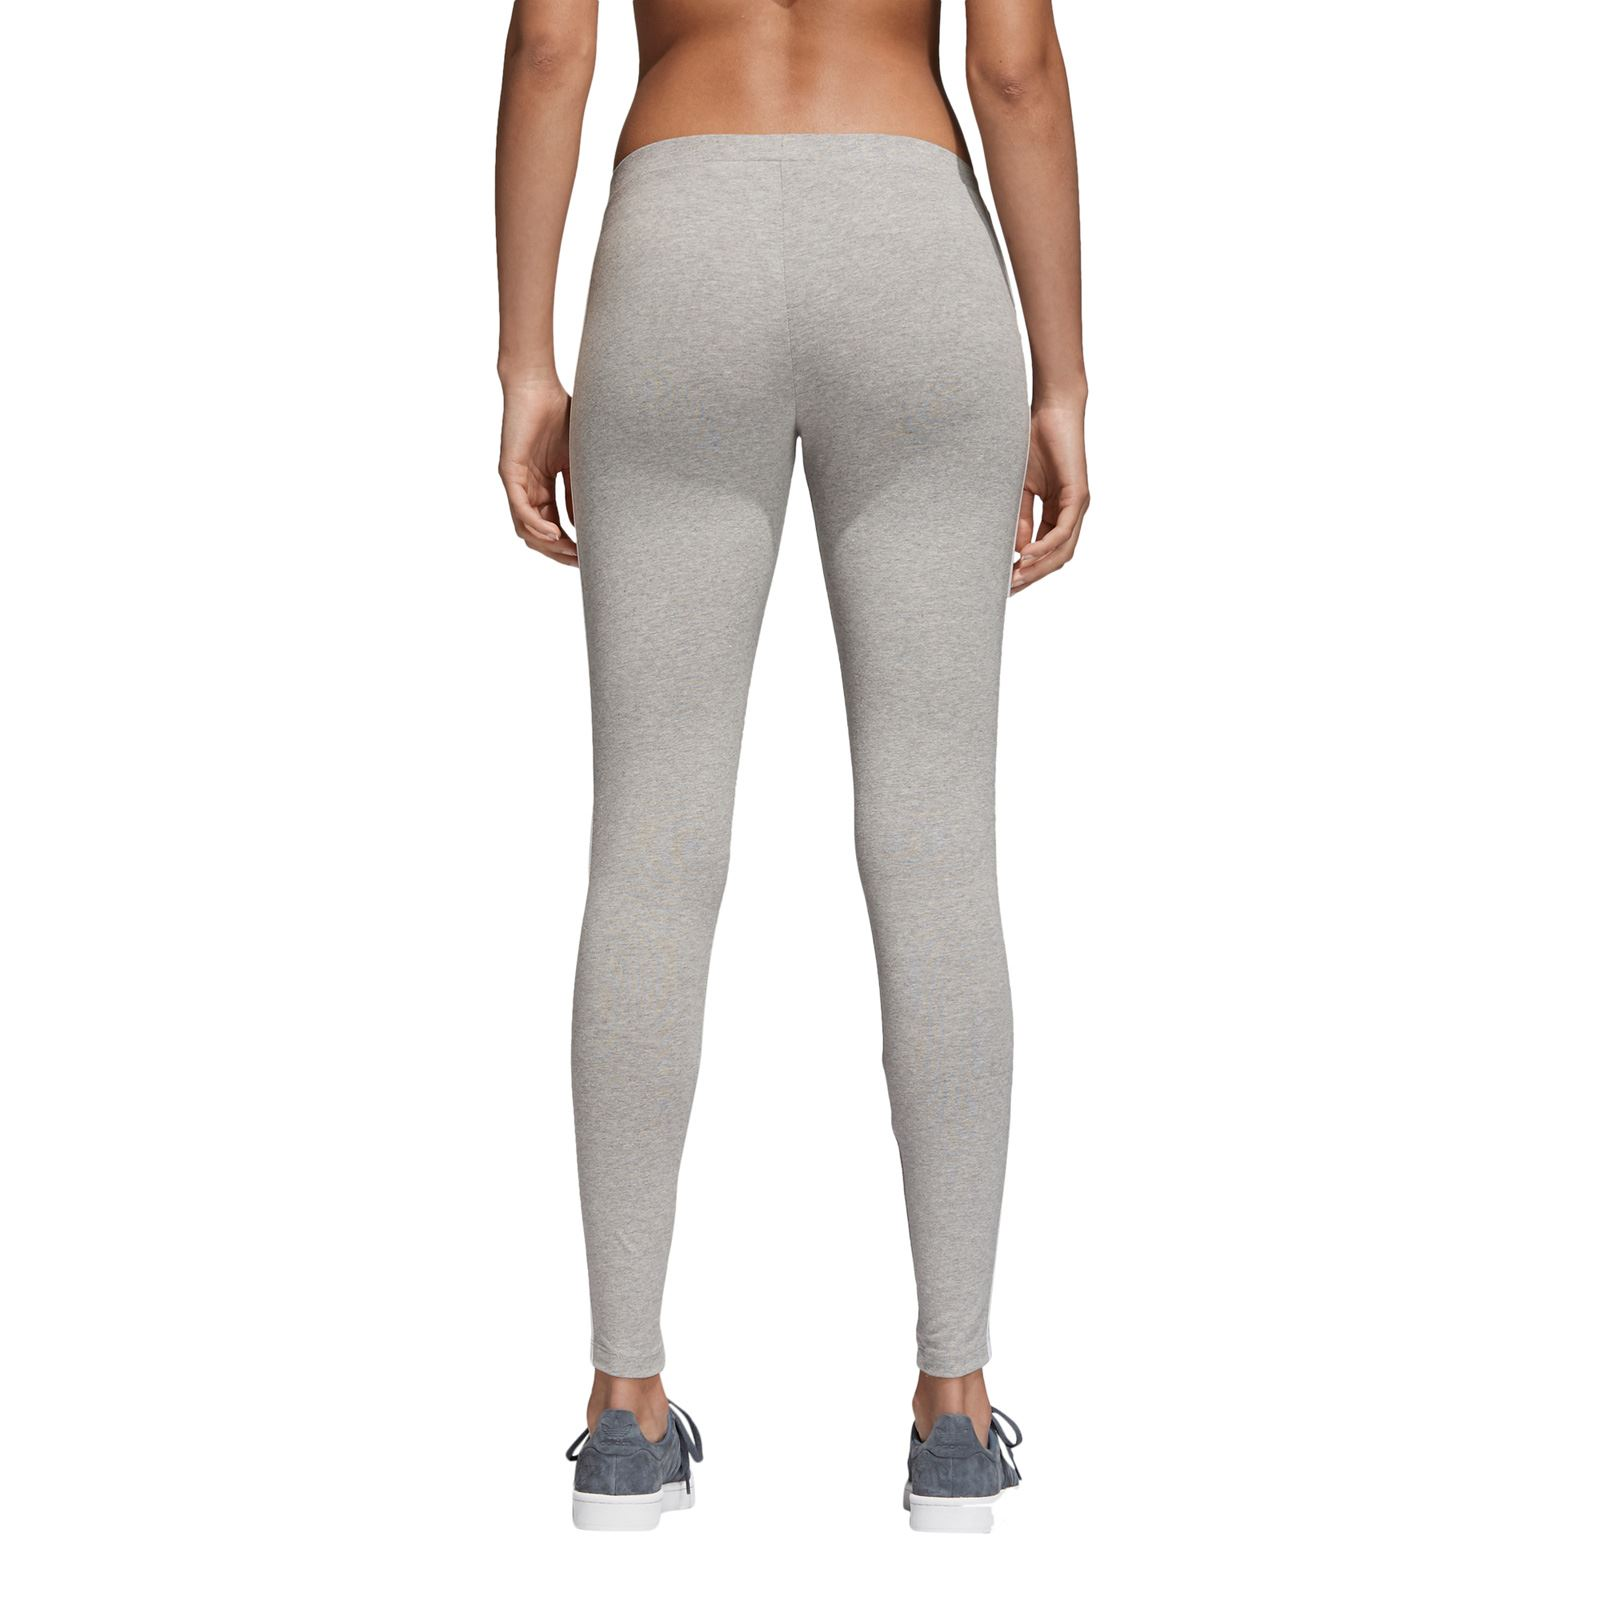 adidas Originals Legging - gris   BrandAlley 934fdcae0586